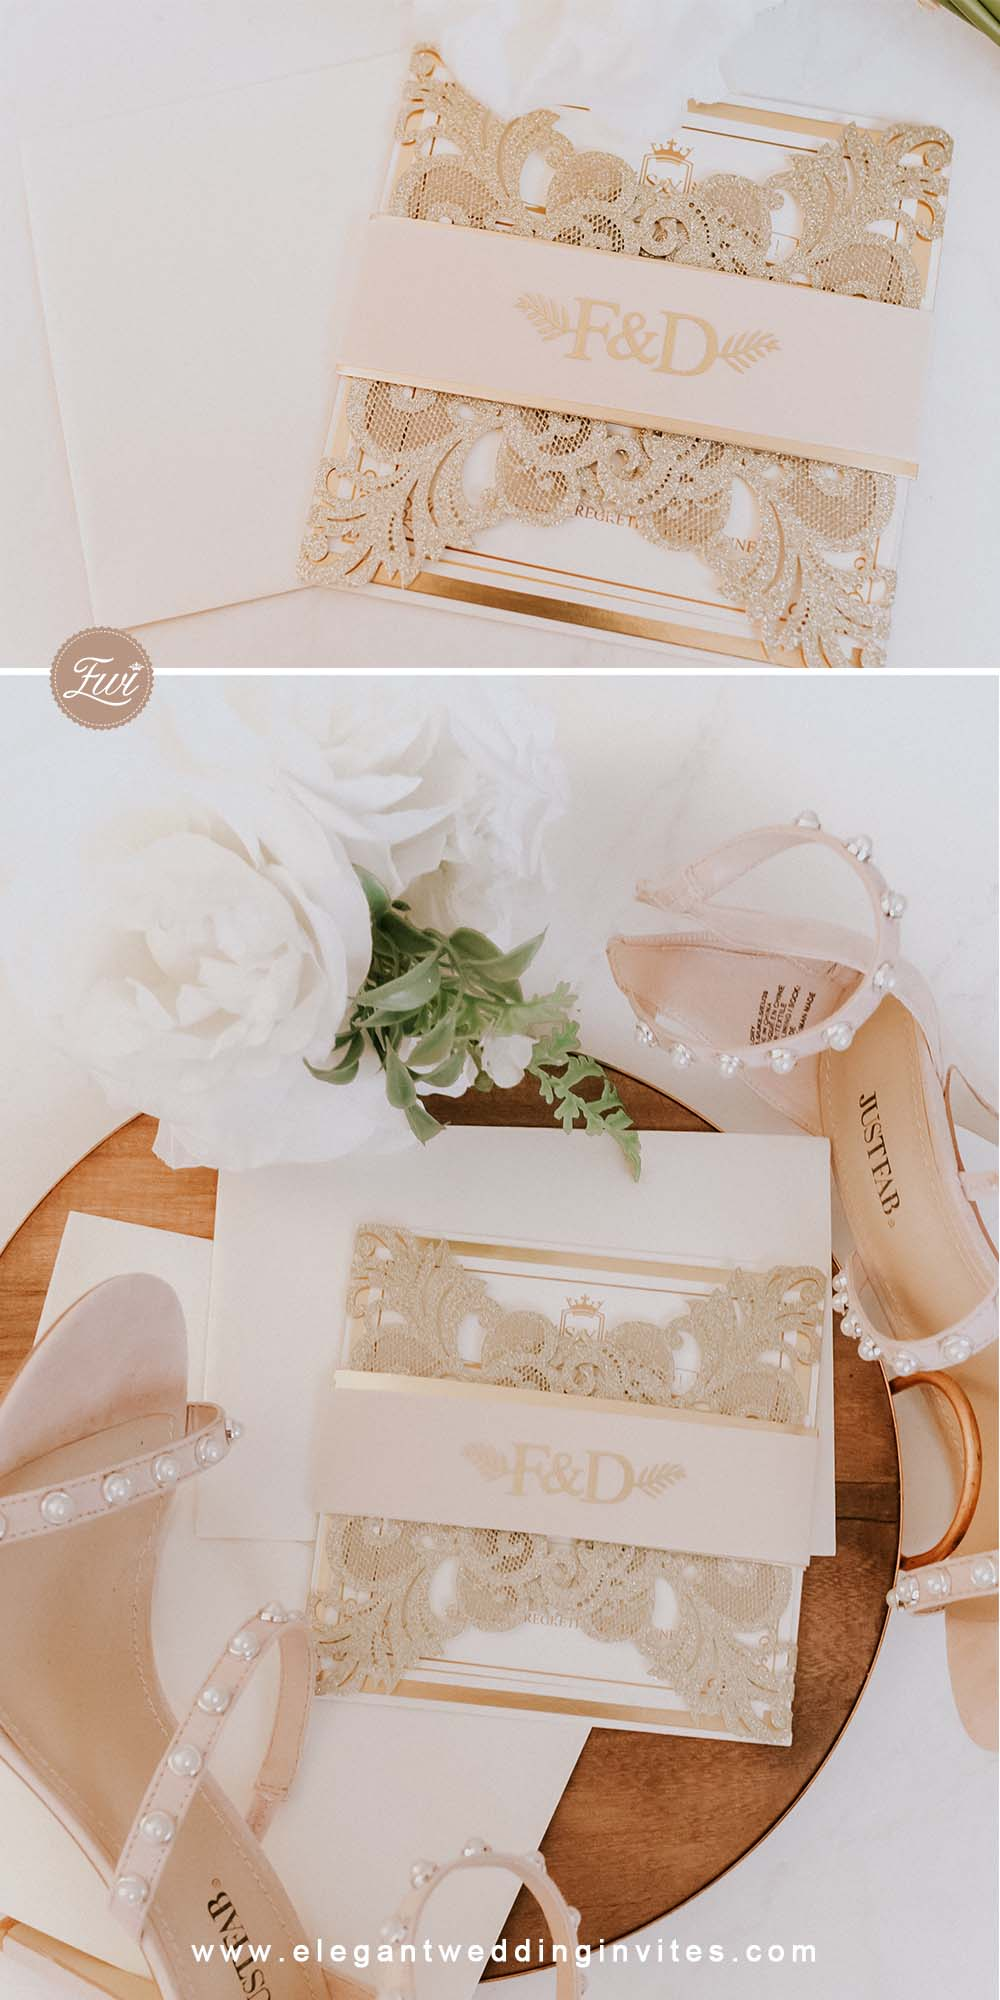 Glowing in Gold Glittery Gold Laser Cut Wrap with Vellum Belly Band and Gold Foil Imprint for elegant wedding ideas